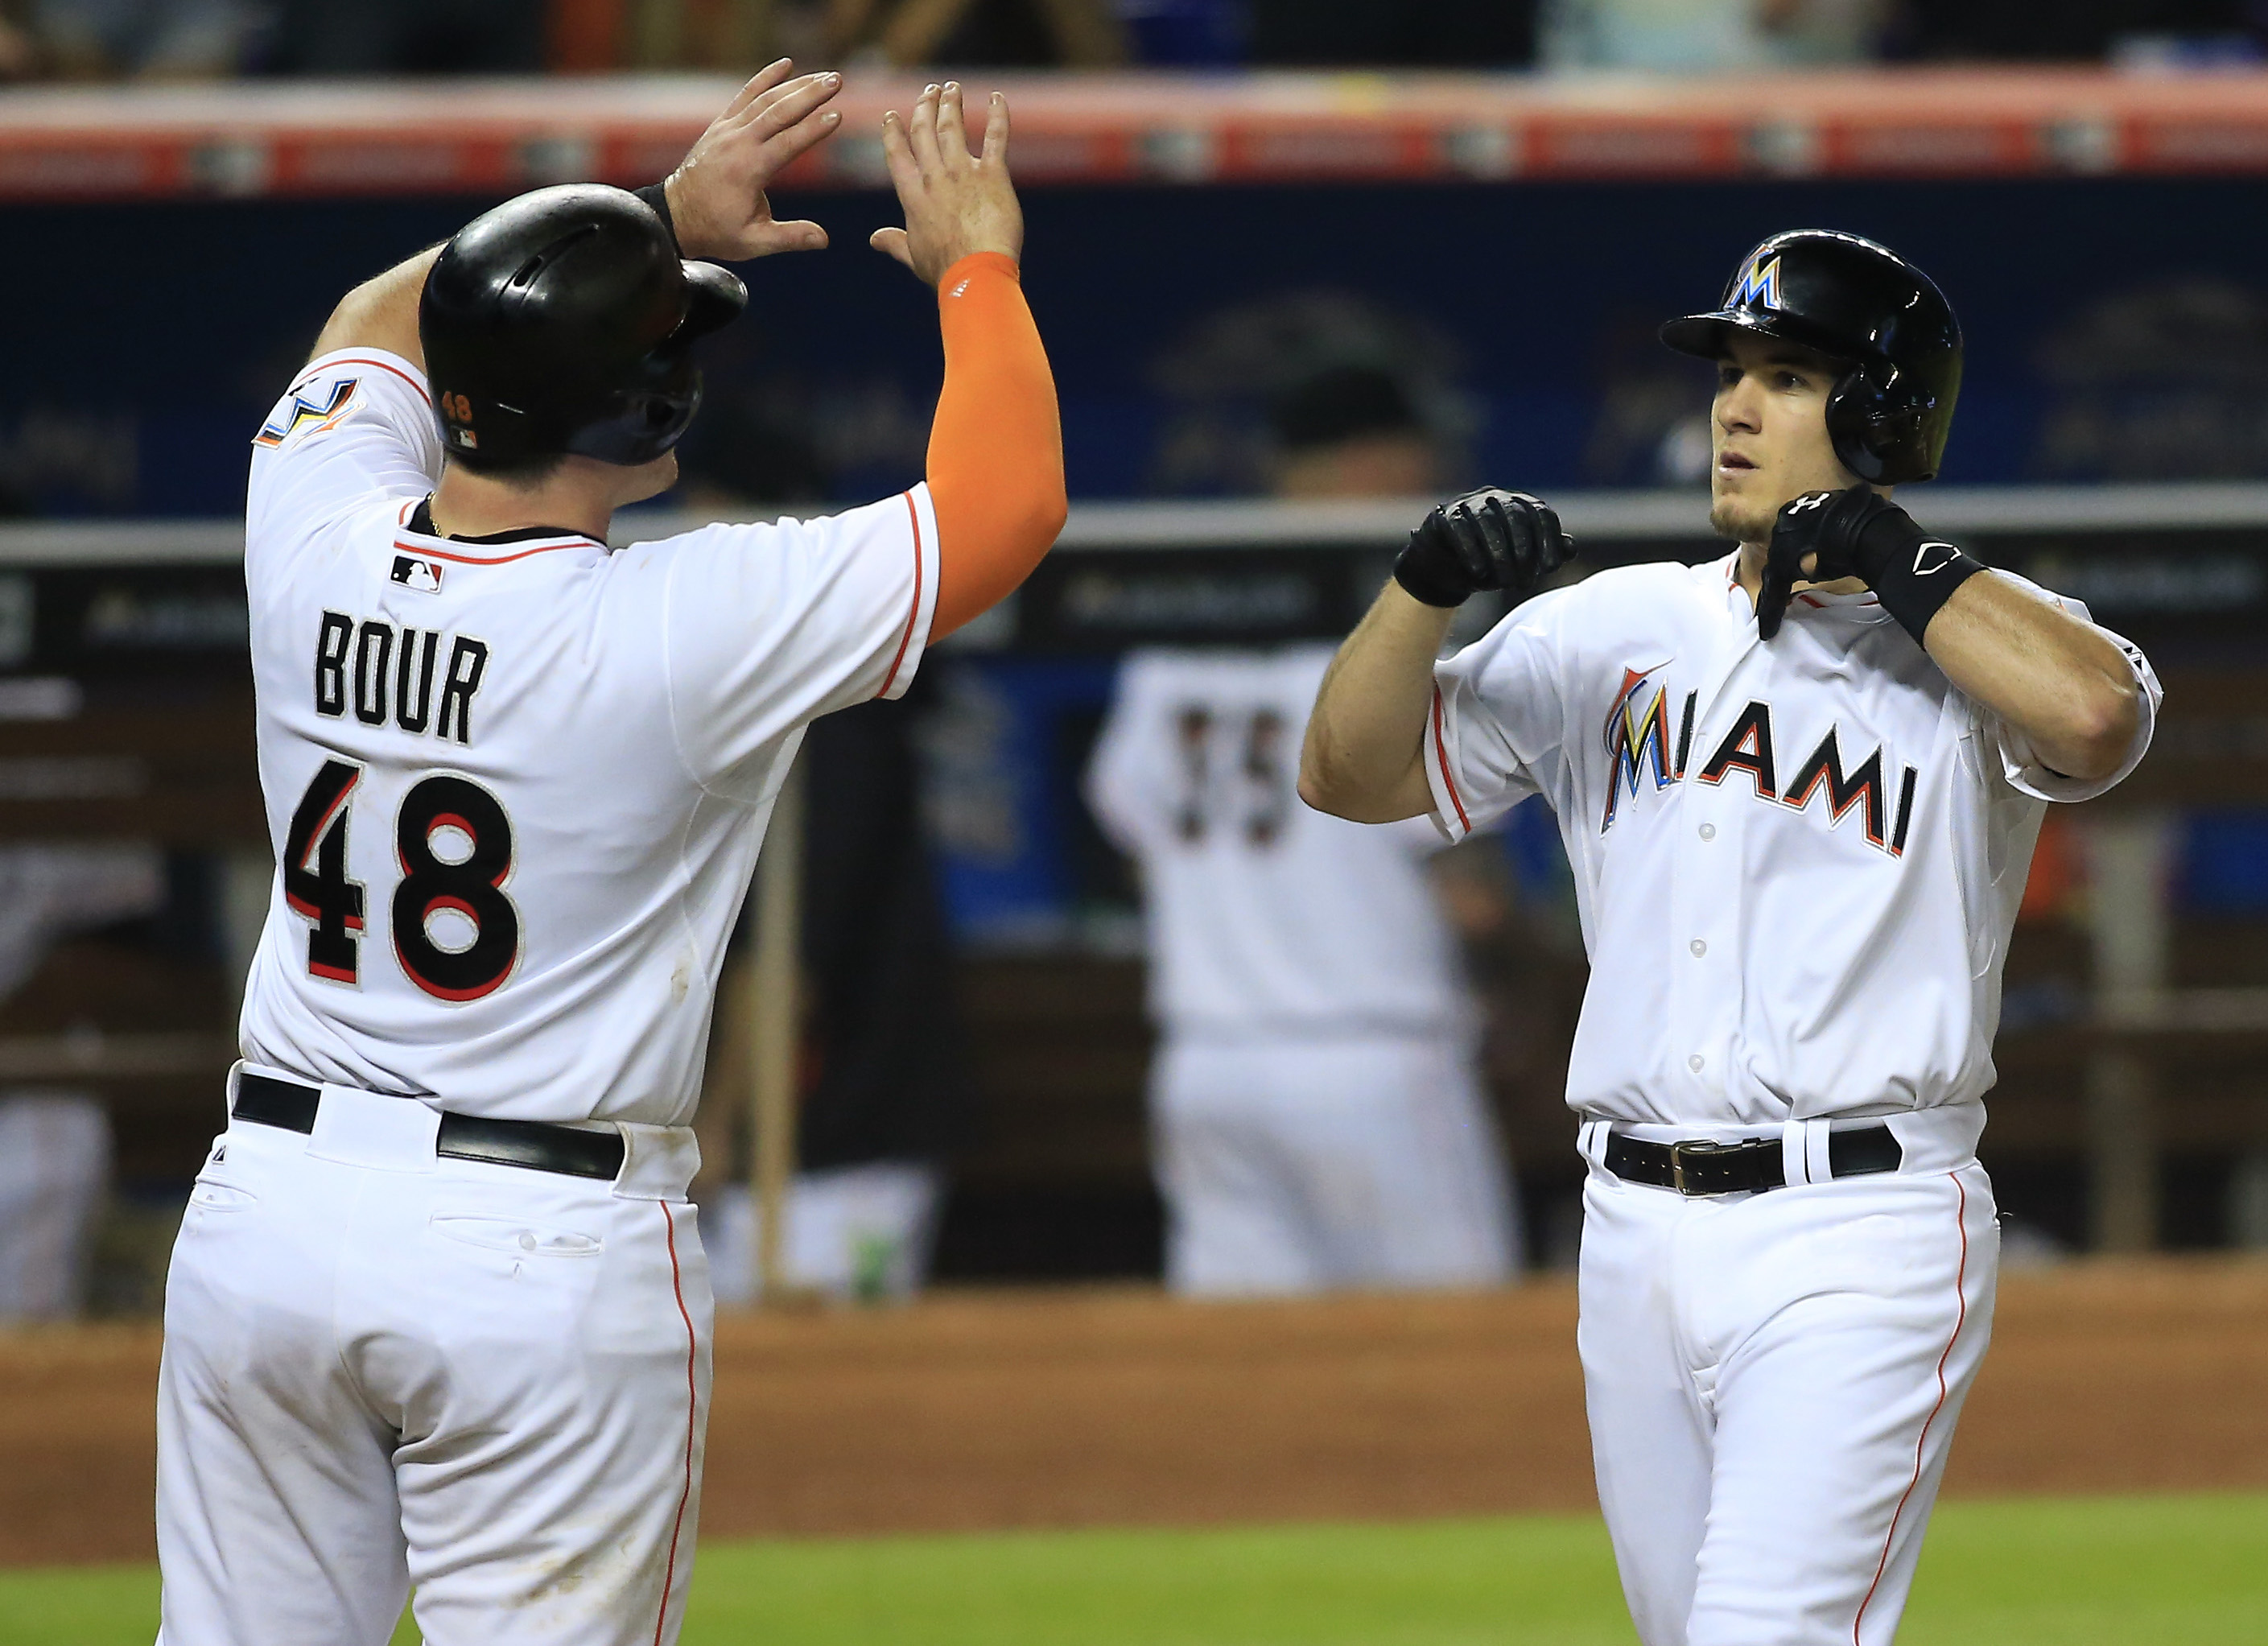 Justin Bour and J.T. Realmuto